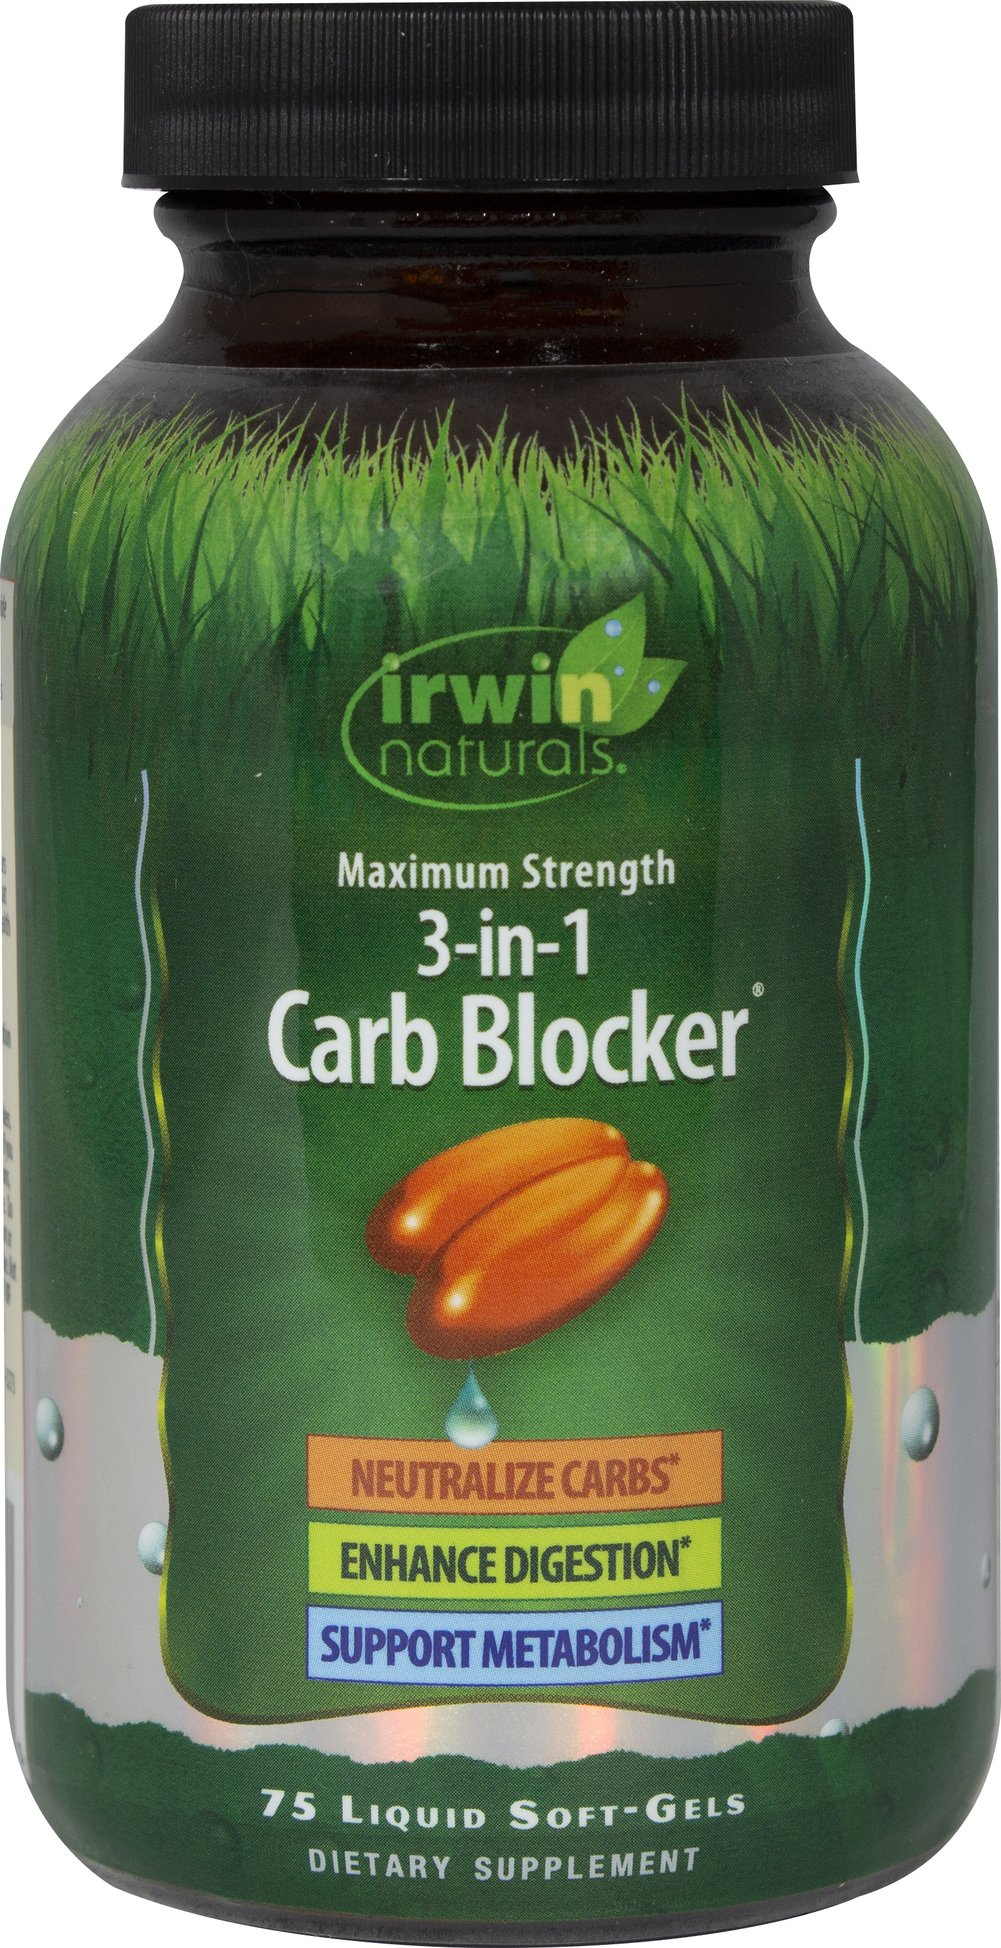 Maximum Strength 3 in 1 Carb Blocker <p><strong>From the Manufacturer's Label:</strong></p><p><br />• Neutralize Carbs**<br />• Enhance Digestion**<br />• Support Metabolism**<br /><br />This product has been specifically designed for those who eat pasta, bread and other carbohydrate-rich foods. The triple-approach formula works to: <br /><br />• <strong>Neutralize Starch Enzymes:</strong> White Kidney bean i